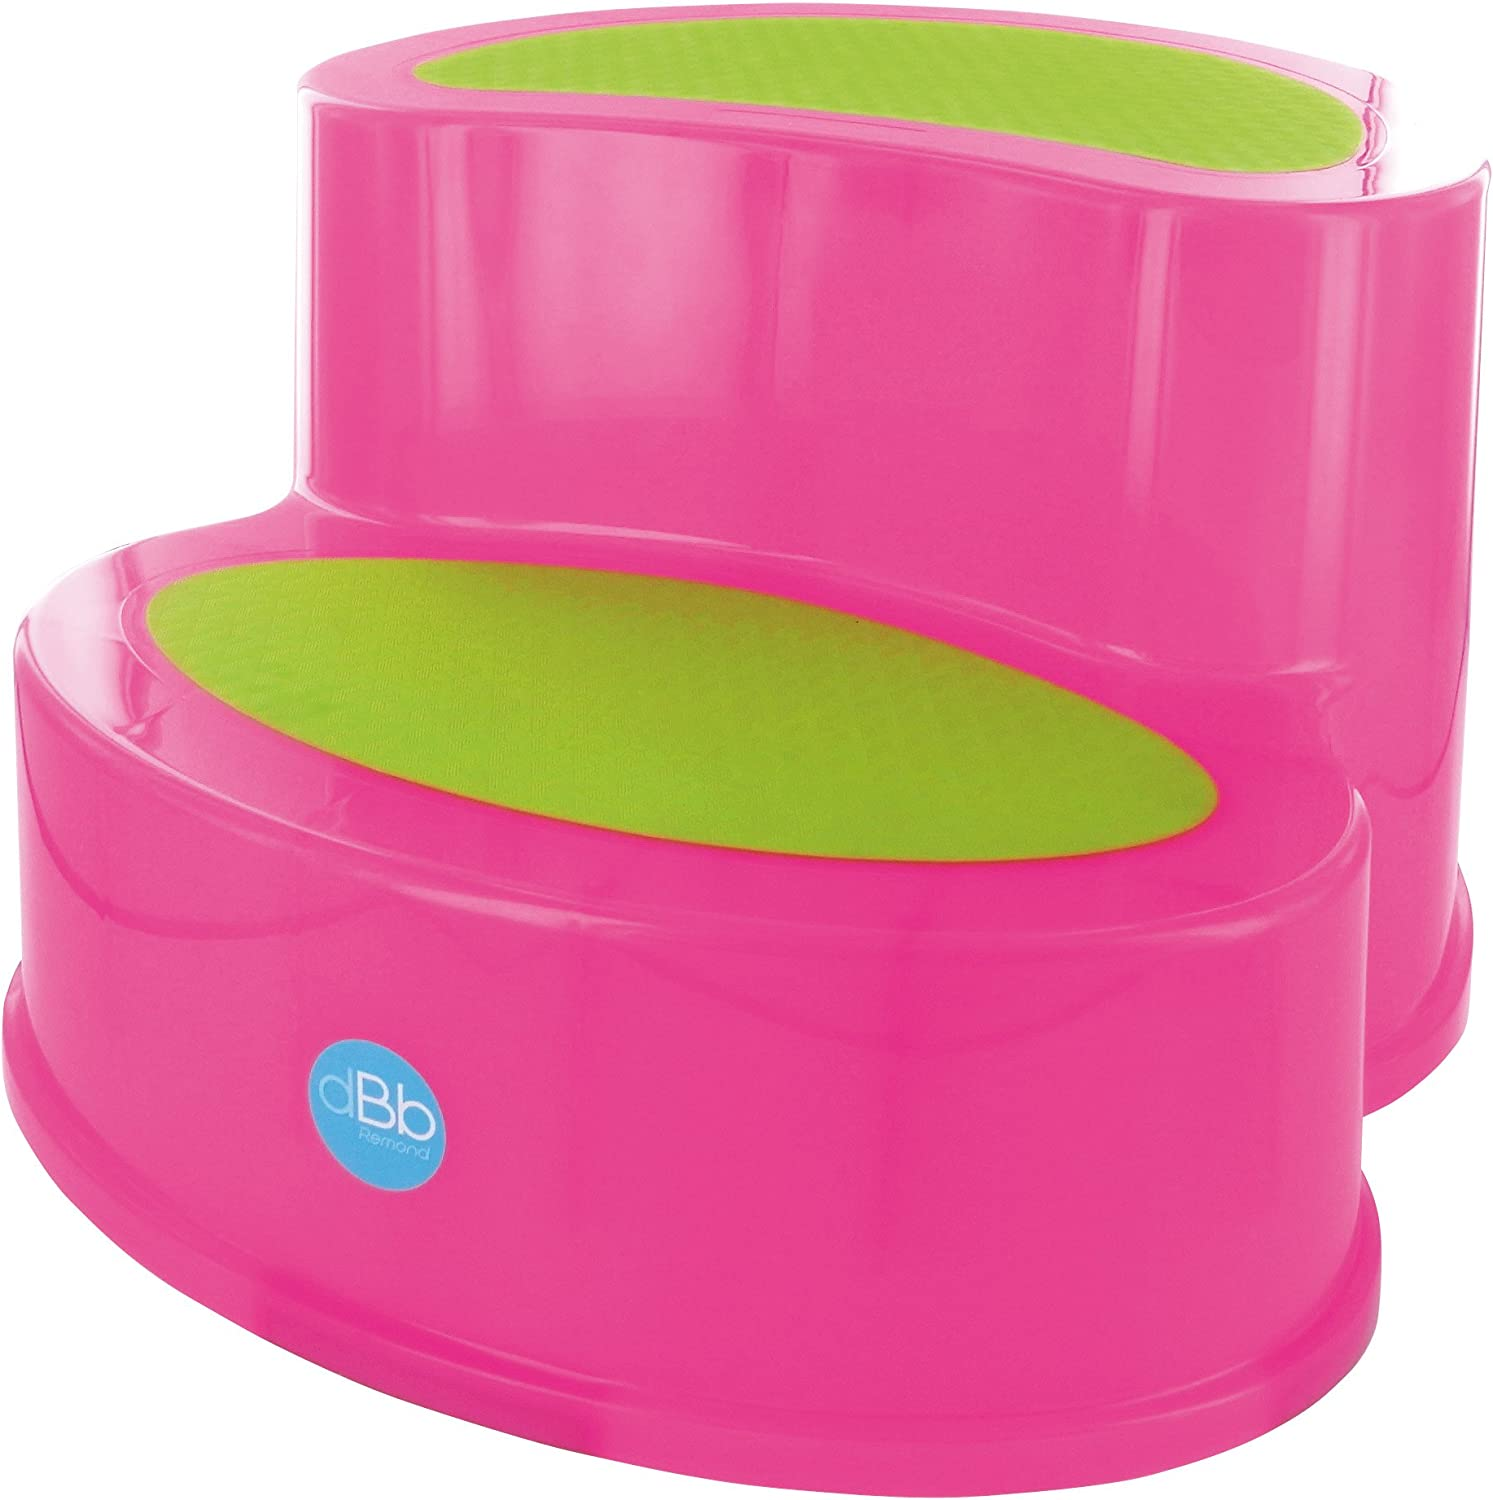 Anti-Slip Step Stool Translucent Pink